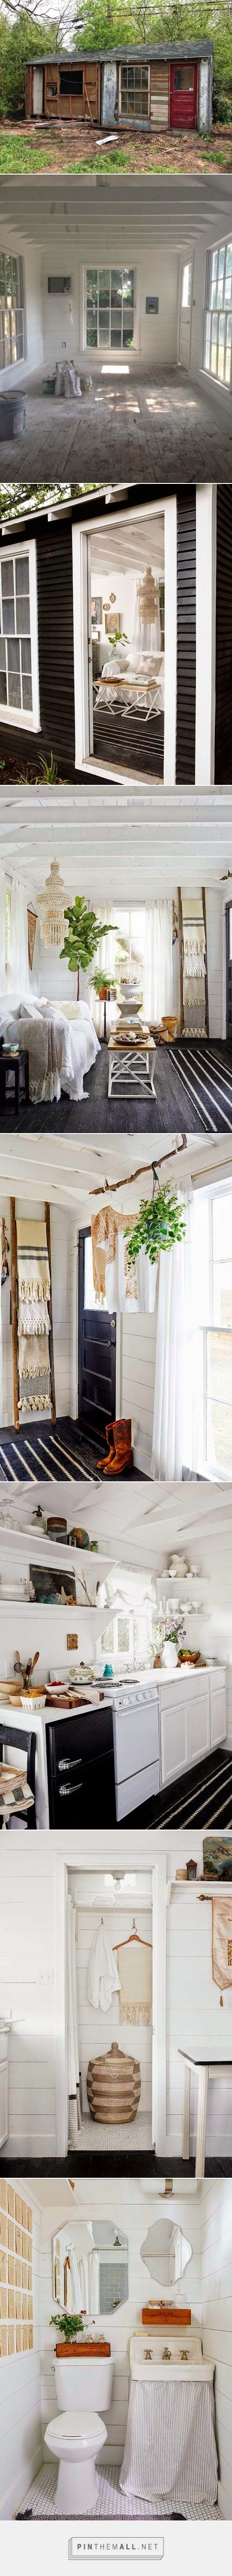 great tiny home from a shack - my scandinavian home: A dreamy little space to call home